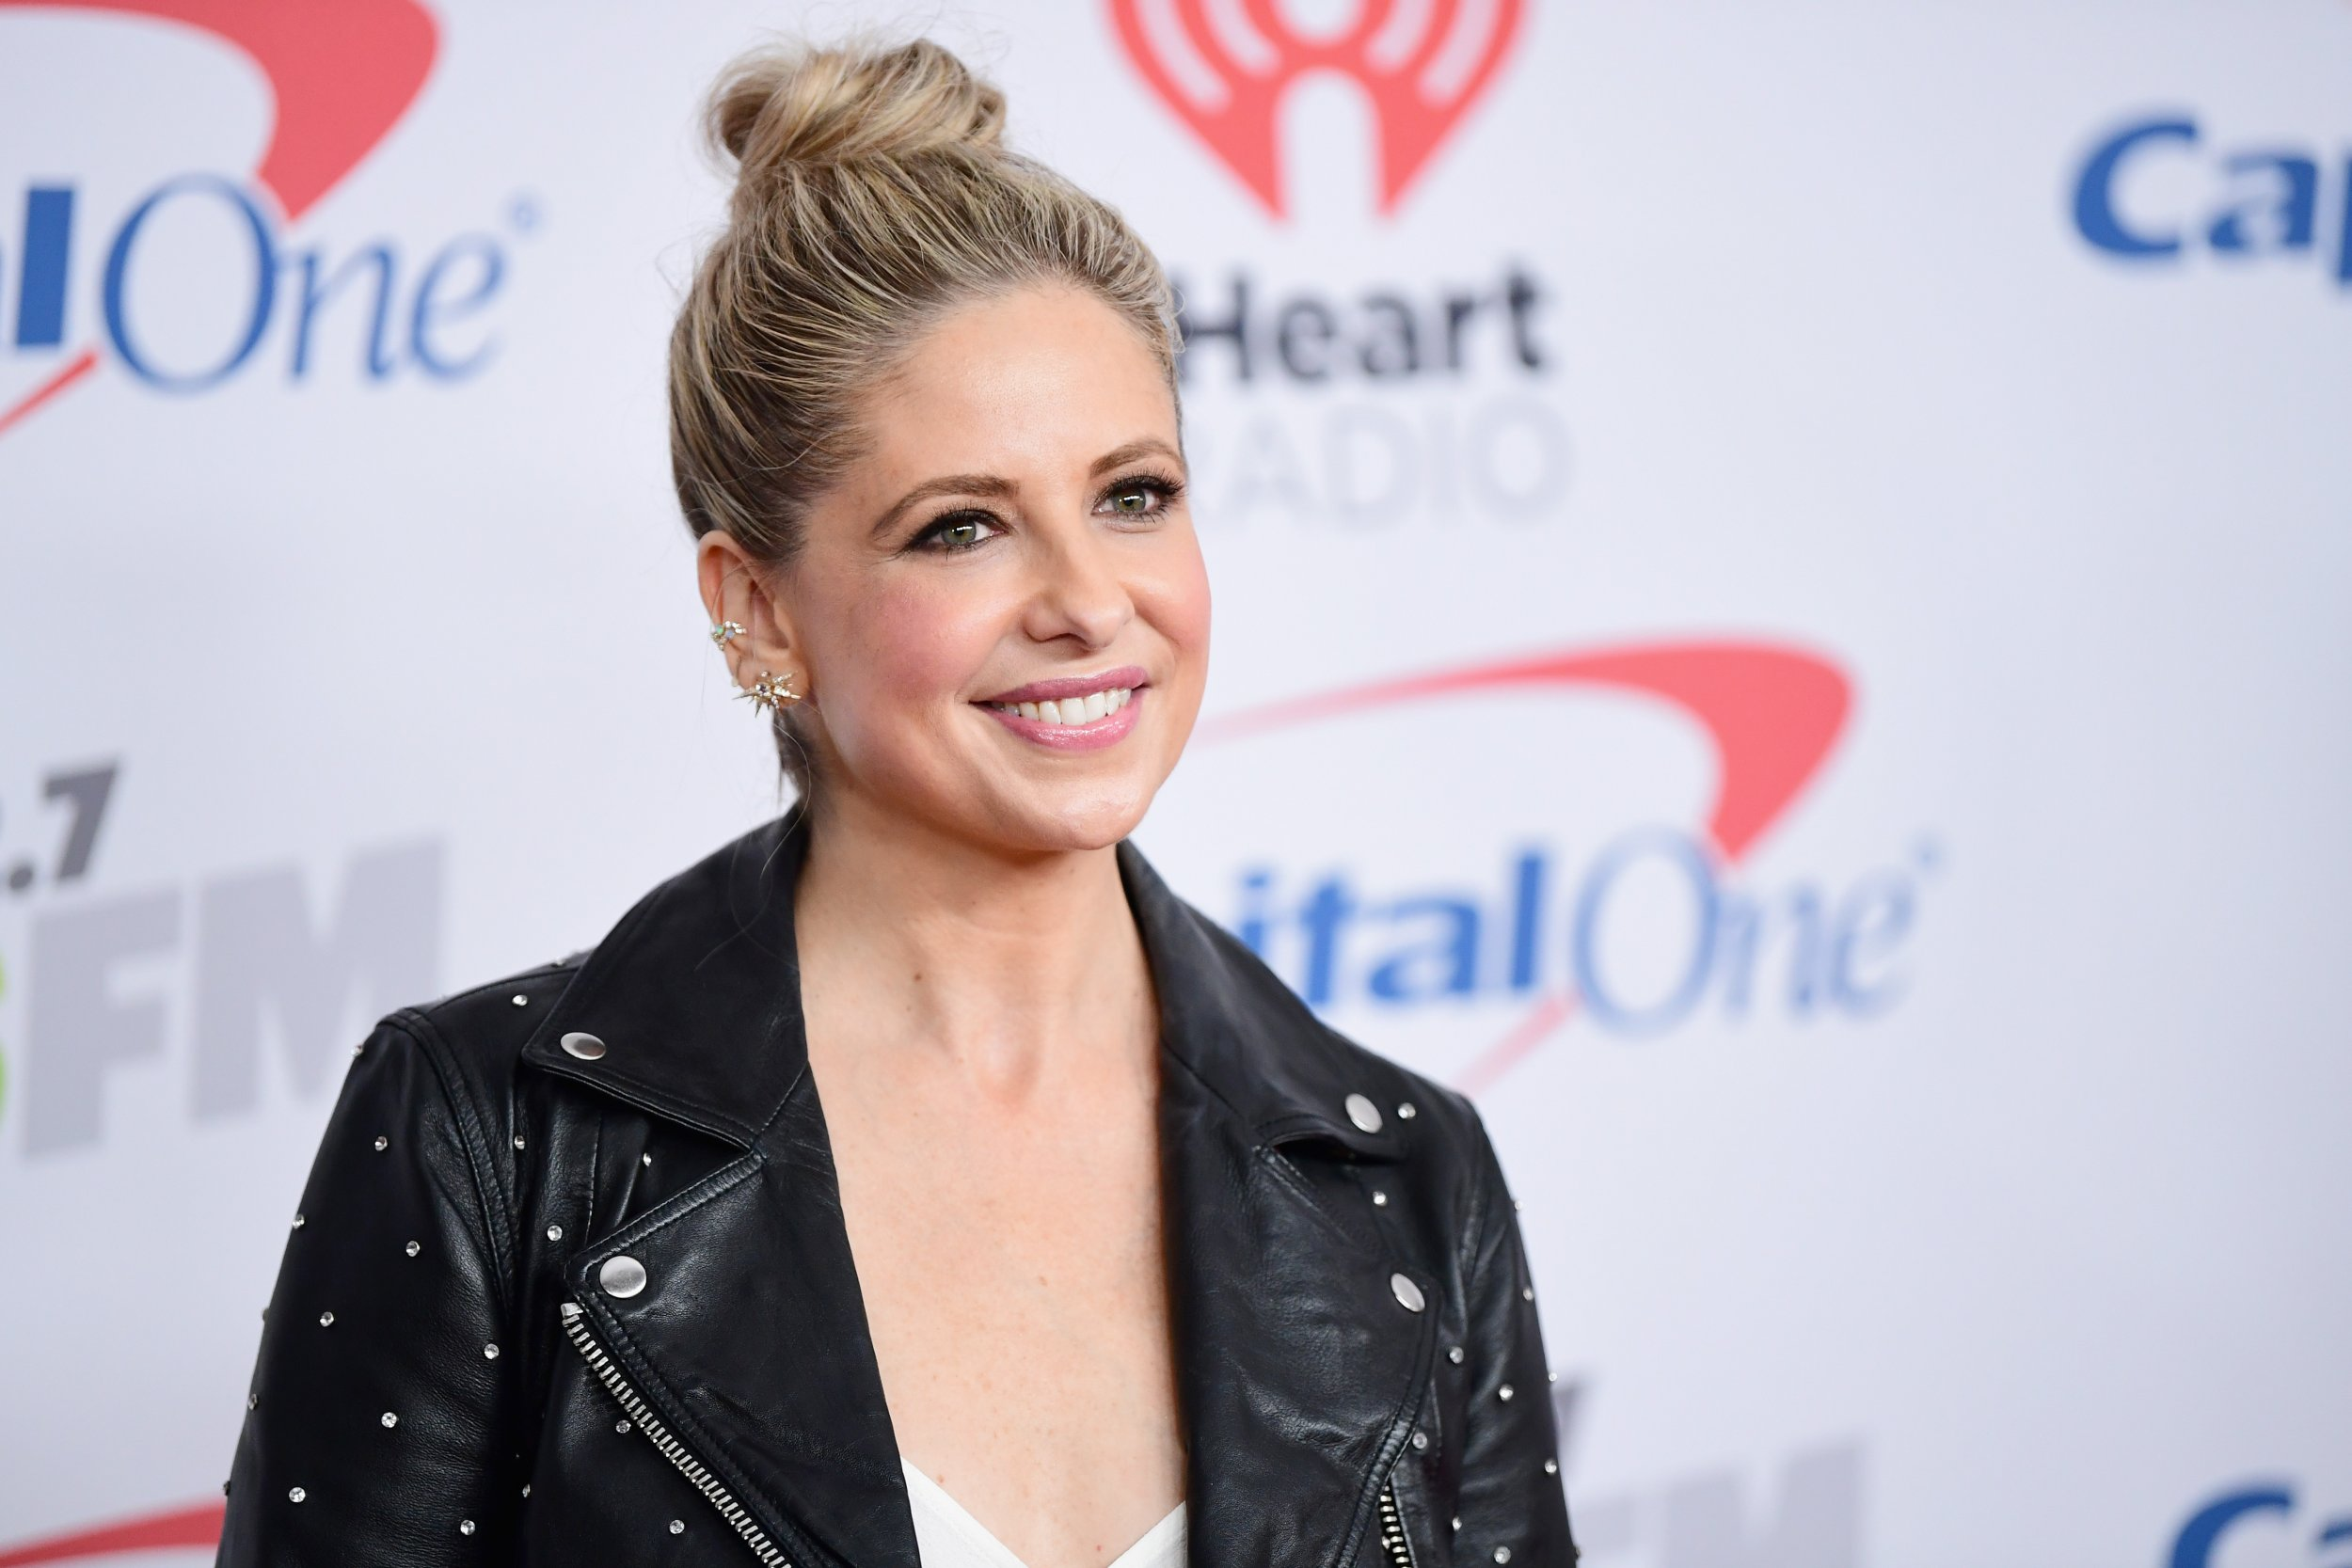 Sarah Michelle Gellar Don't 'Overeat' on Thanksgiving Backlash